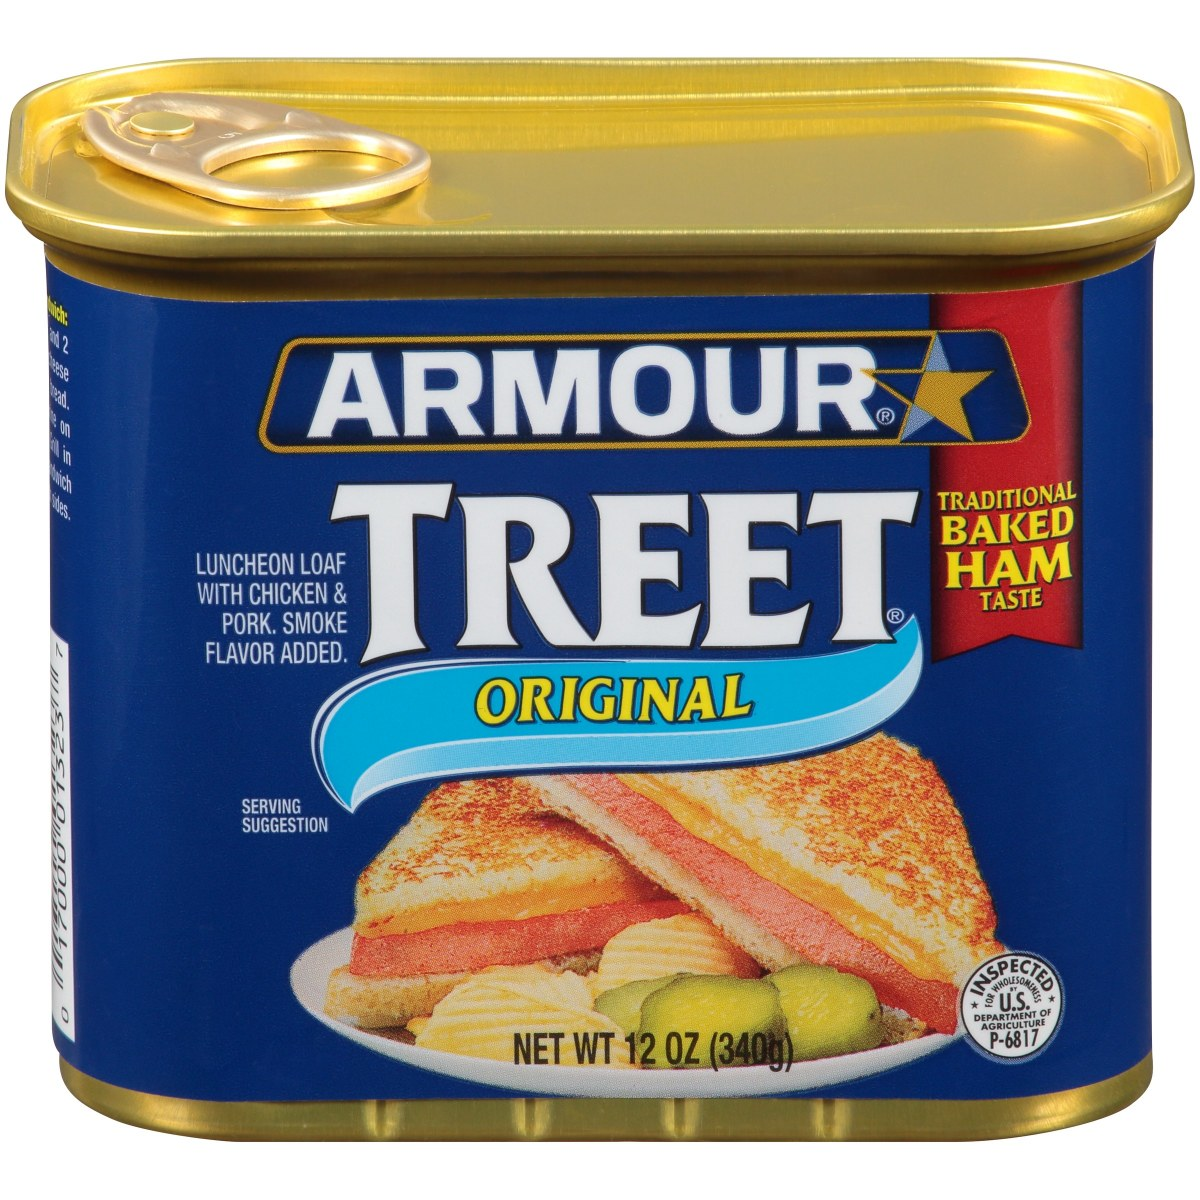 In 1951, Armour Star Treet—a canned meat product similar to SPAM that is made from chicken and pork—was a real crowd-pleaser.